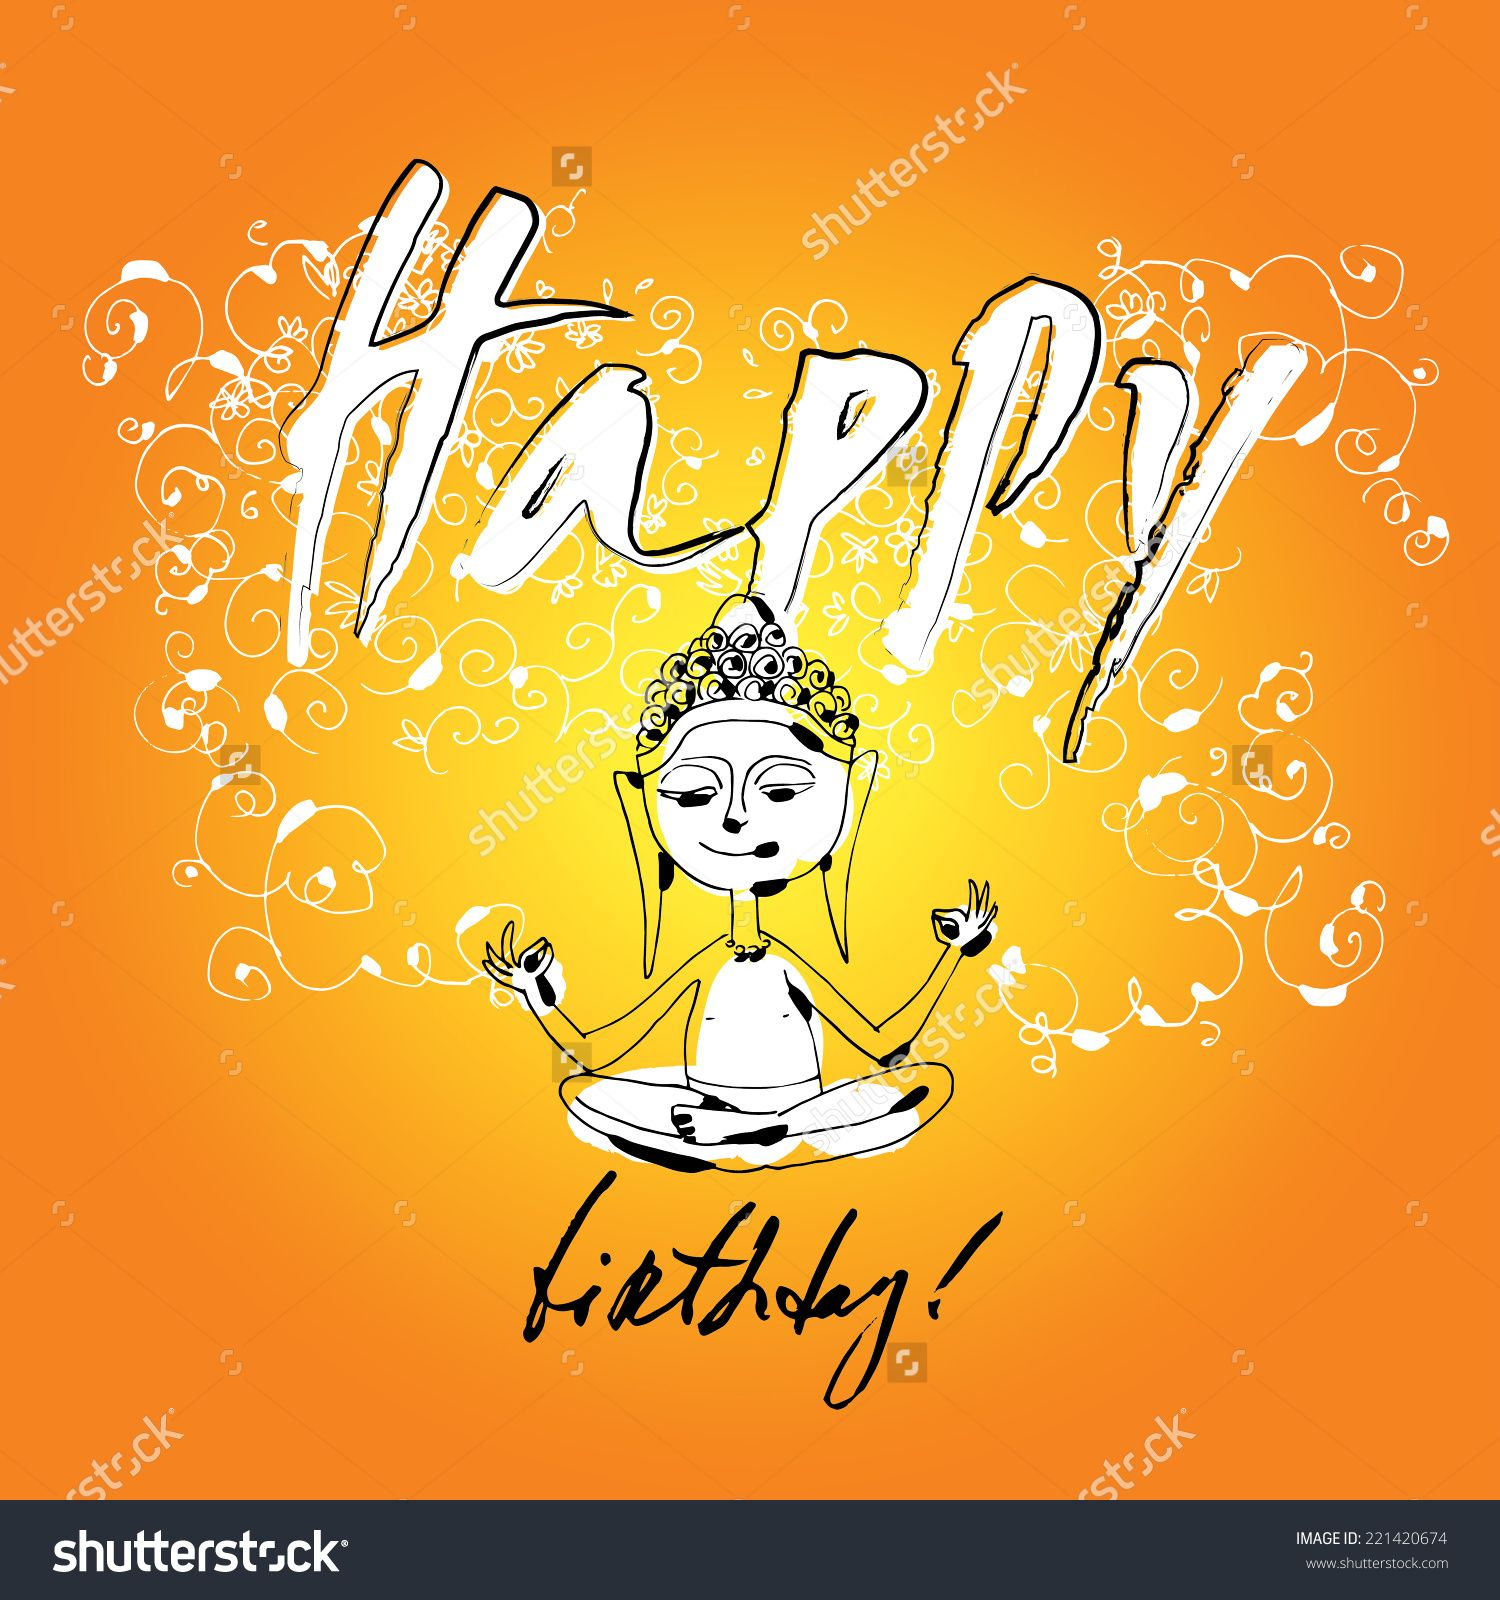 Funny Buddhist Birthday - Google Search